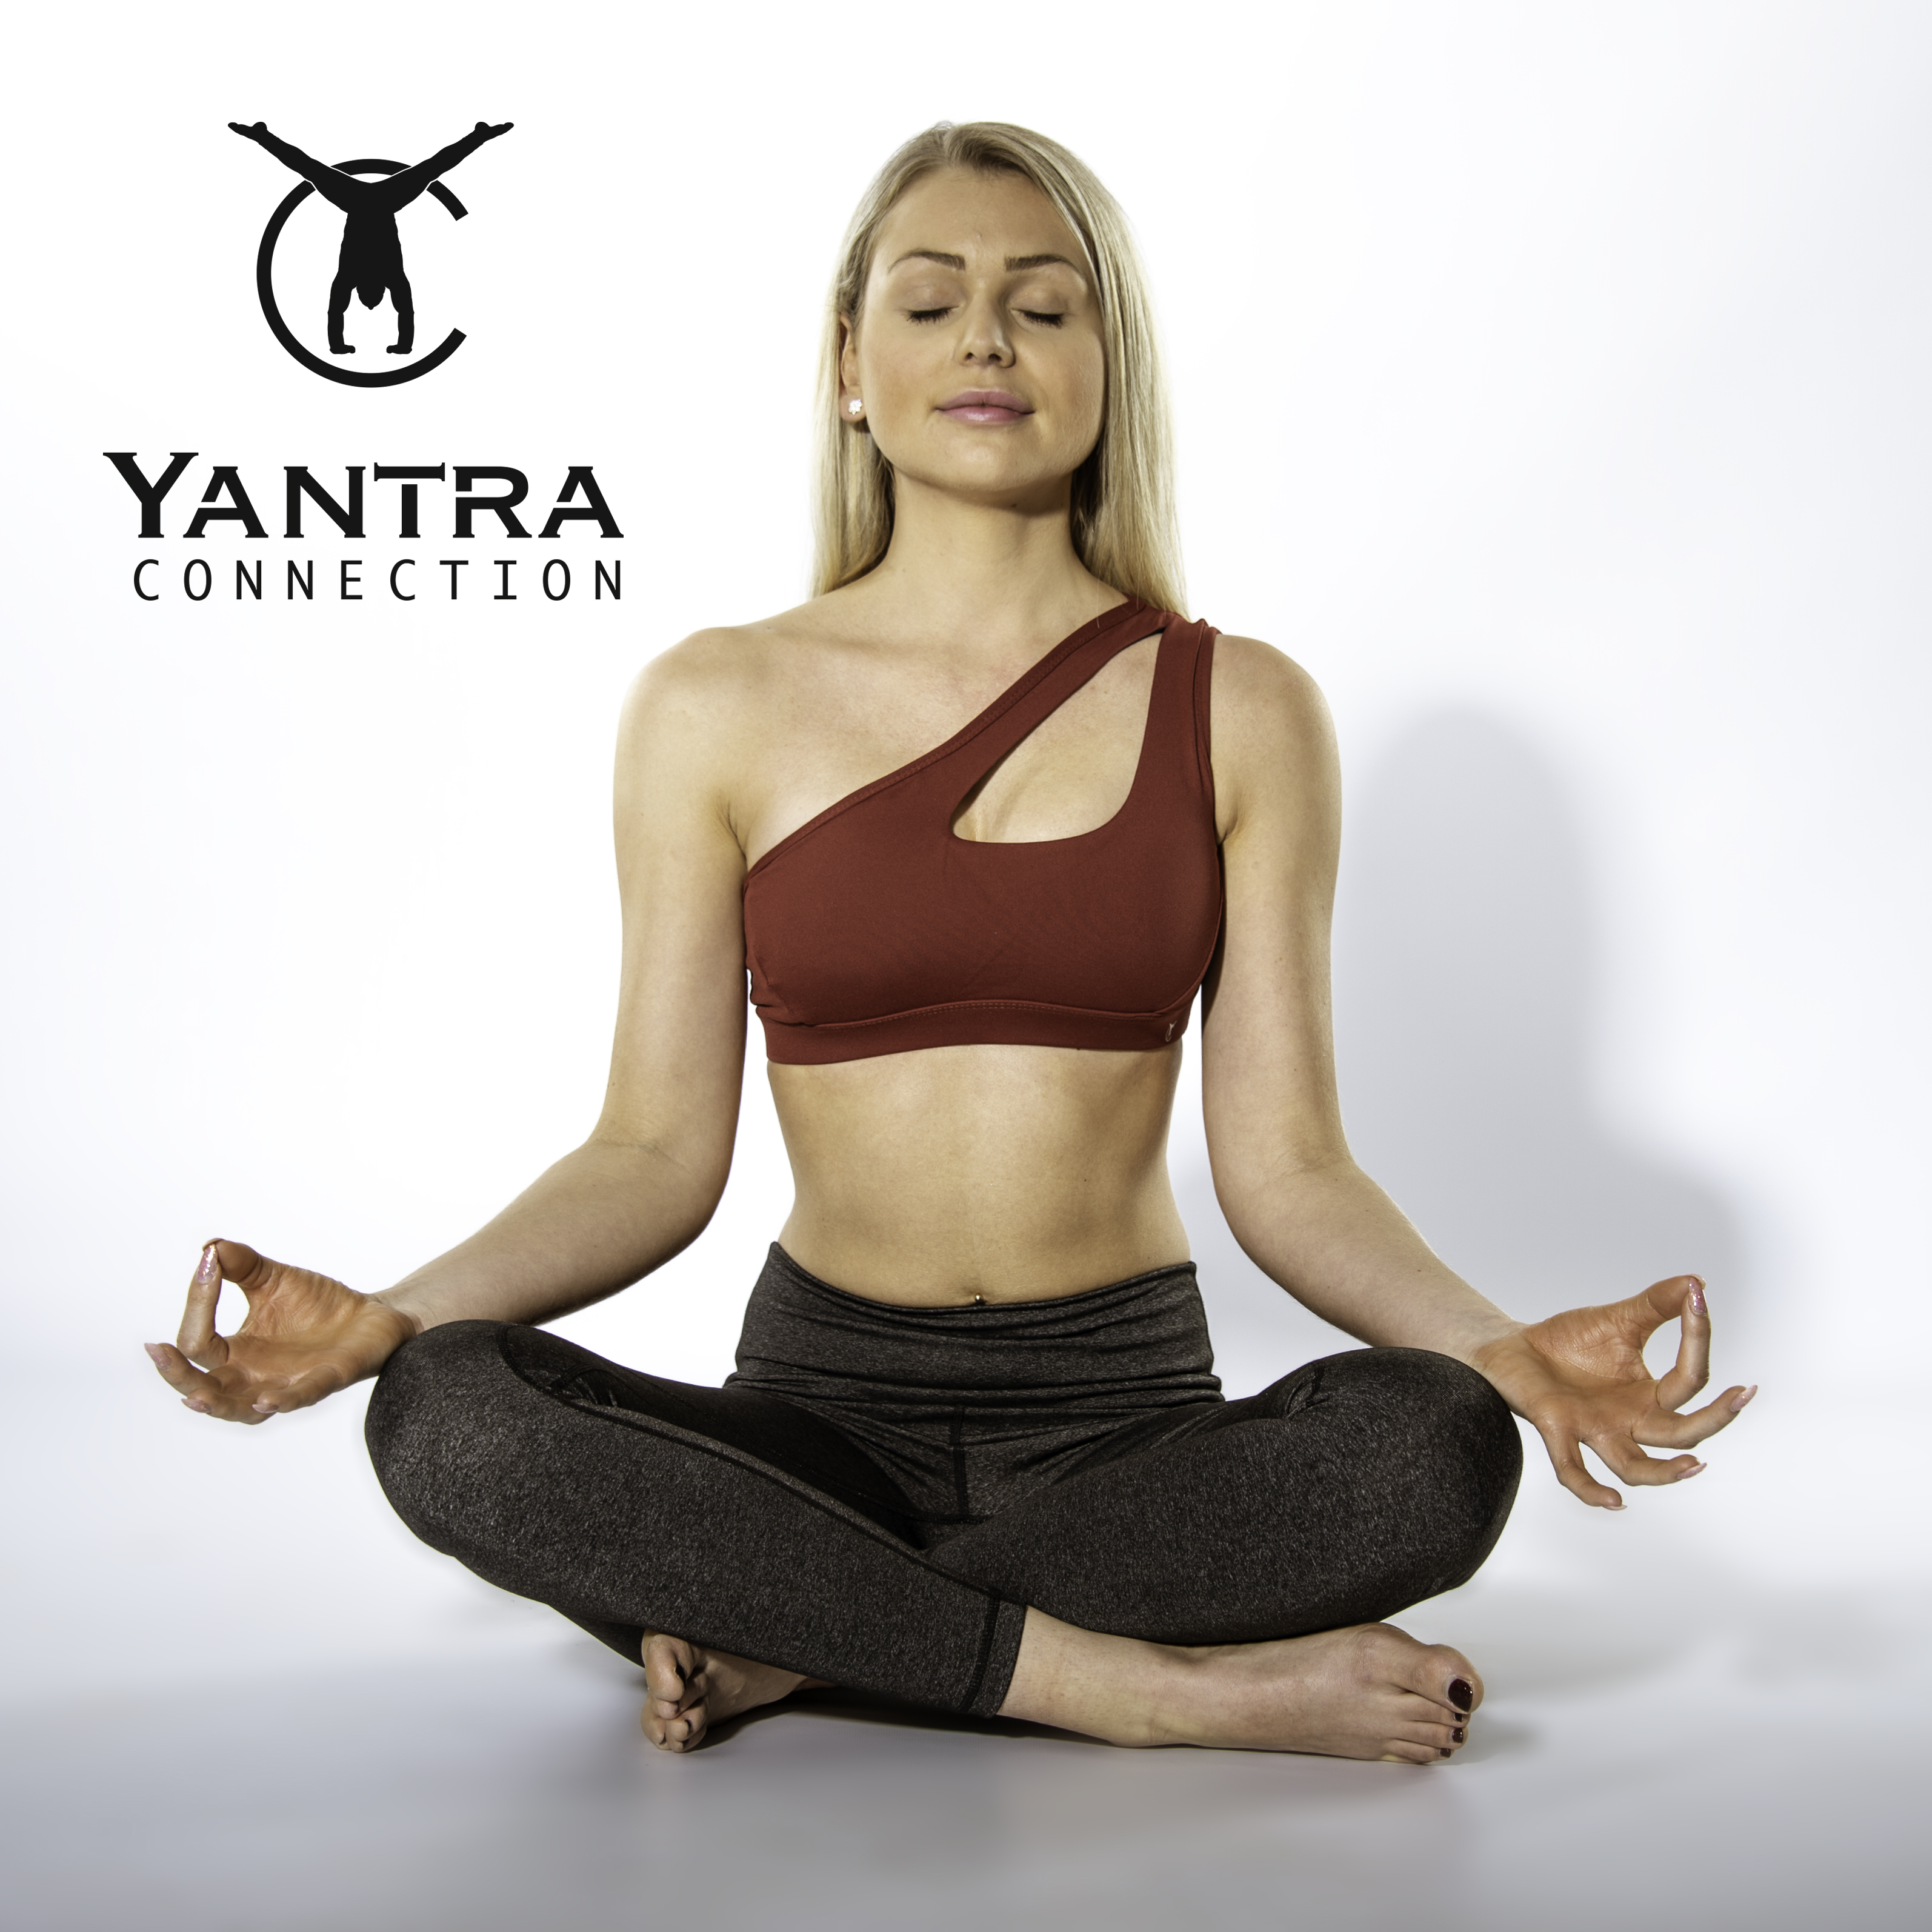 Yantra Connection